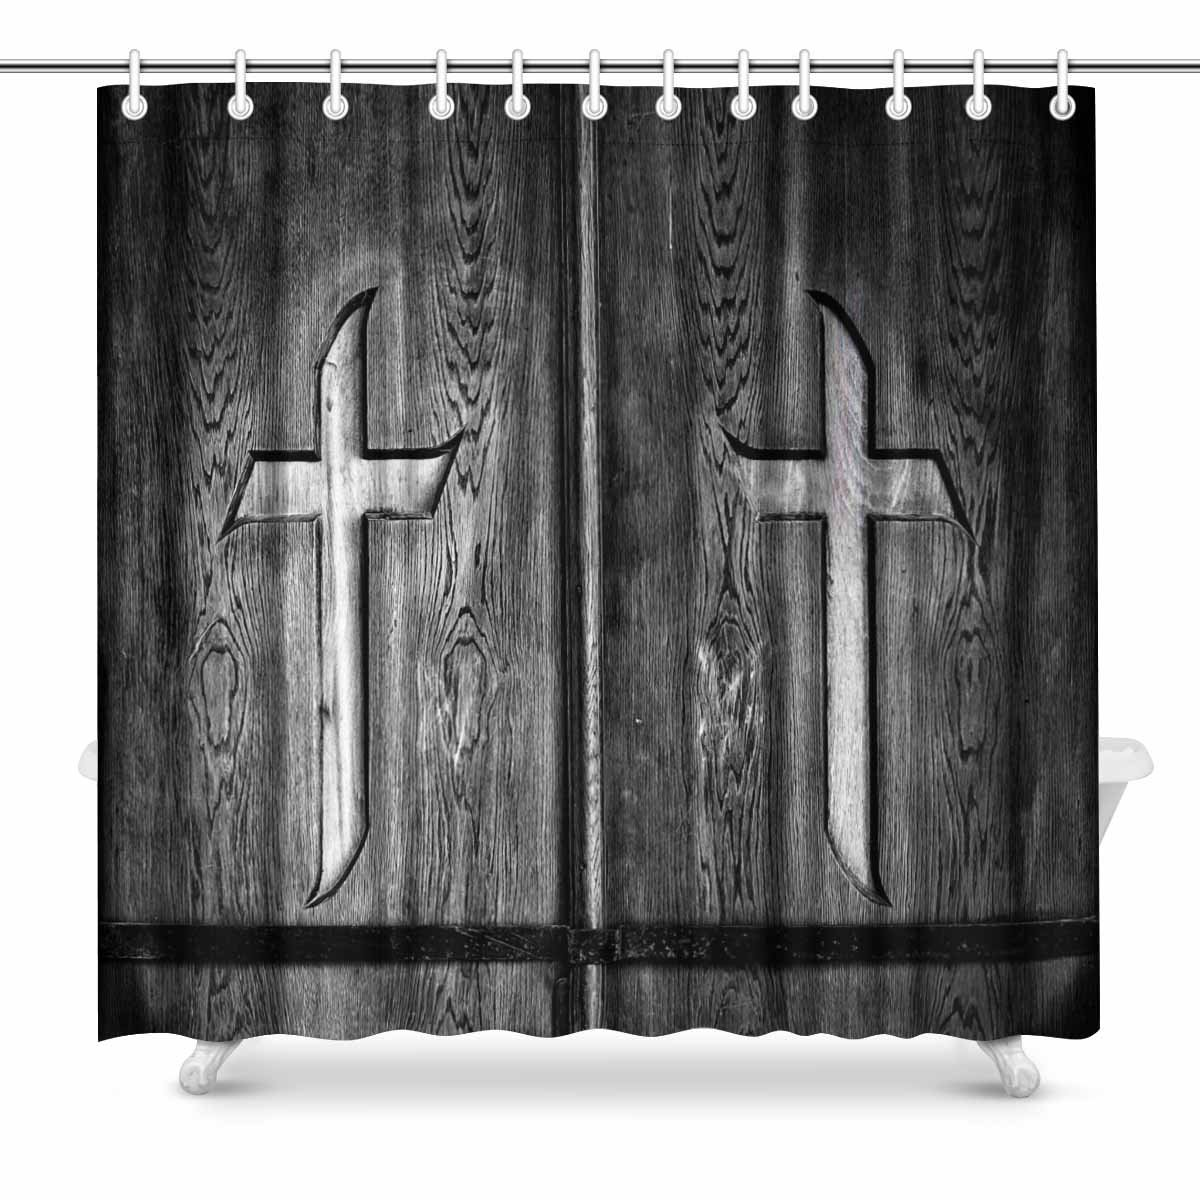 Us 16 42 55 Off Aplysia Wood Crosses On Old Church Door Fabric Bathroom Decor Shower Curtain Set With Hooks 72 Inches In Shower Curtains From Home